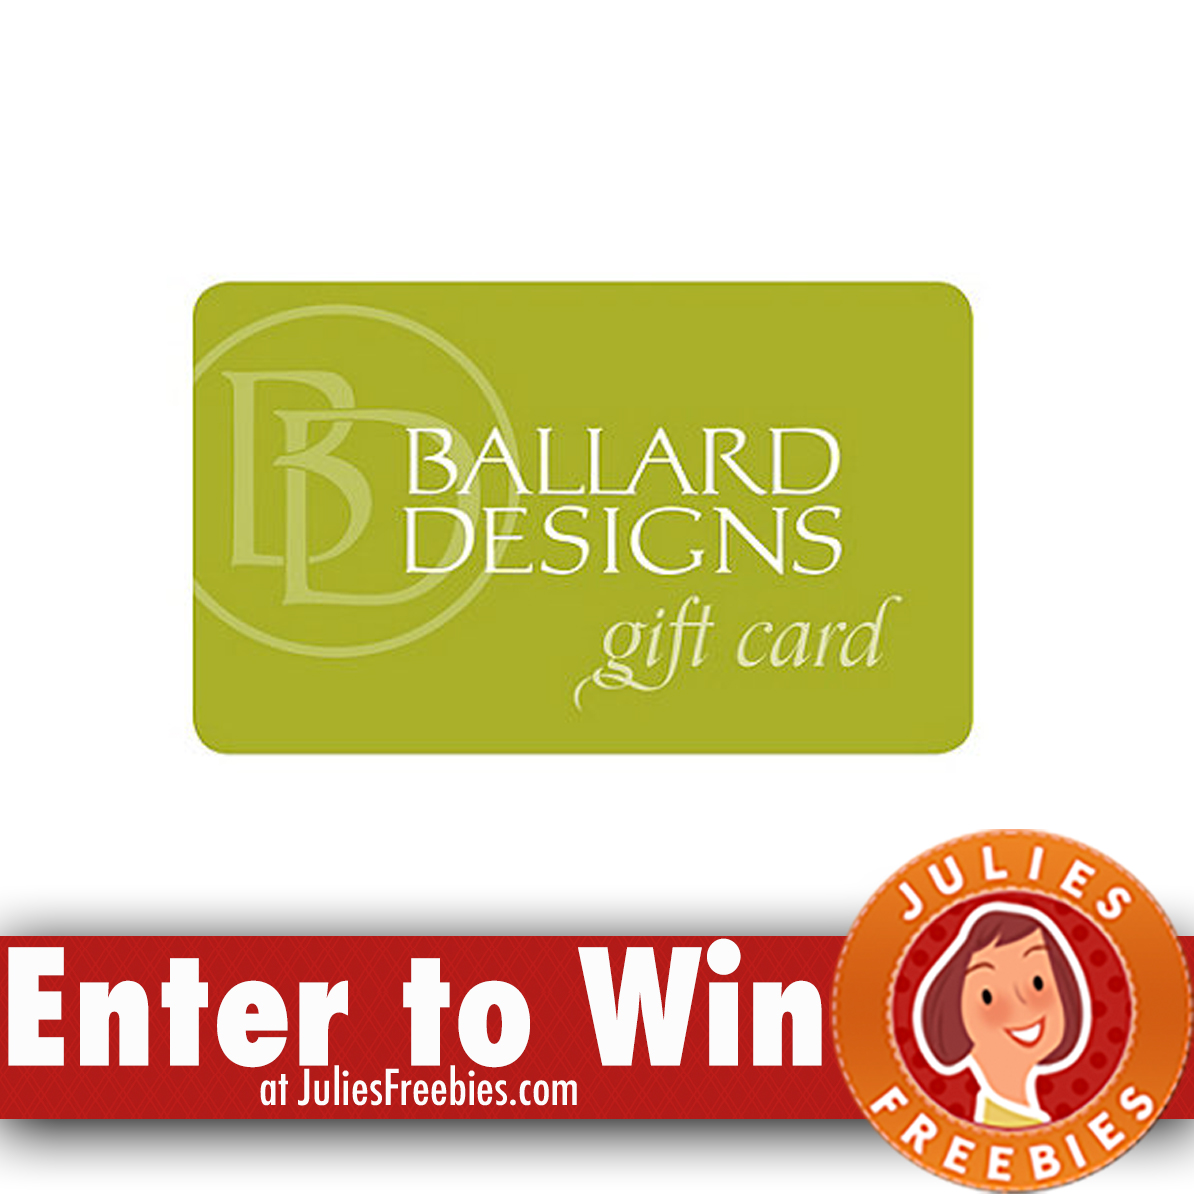 Ballard Design Promo Code Free Shipping 100 Coupons Designs Knock Off Pantry